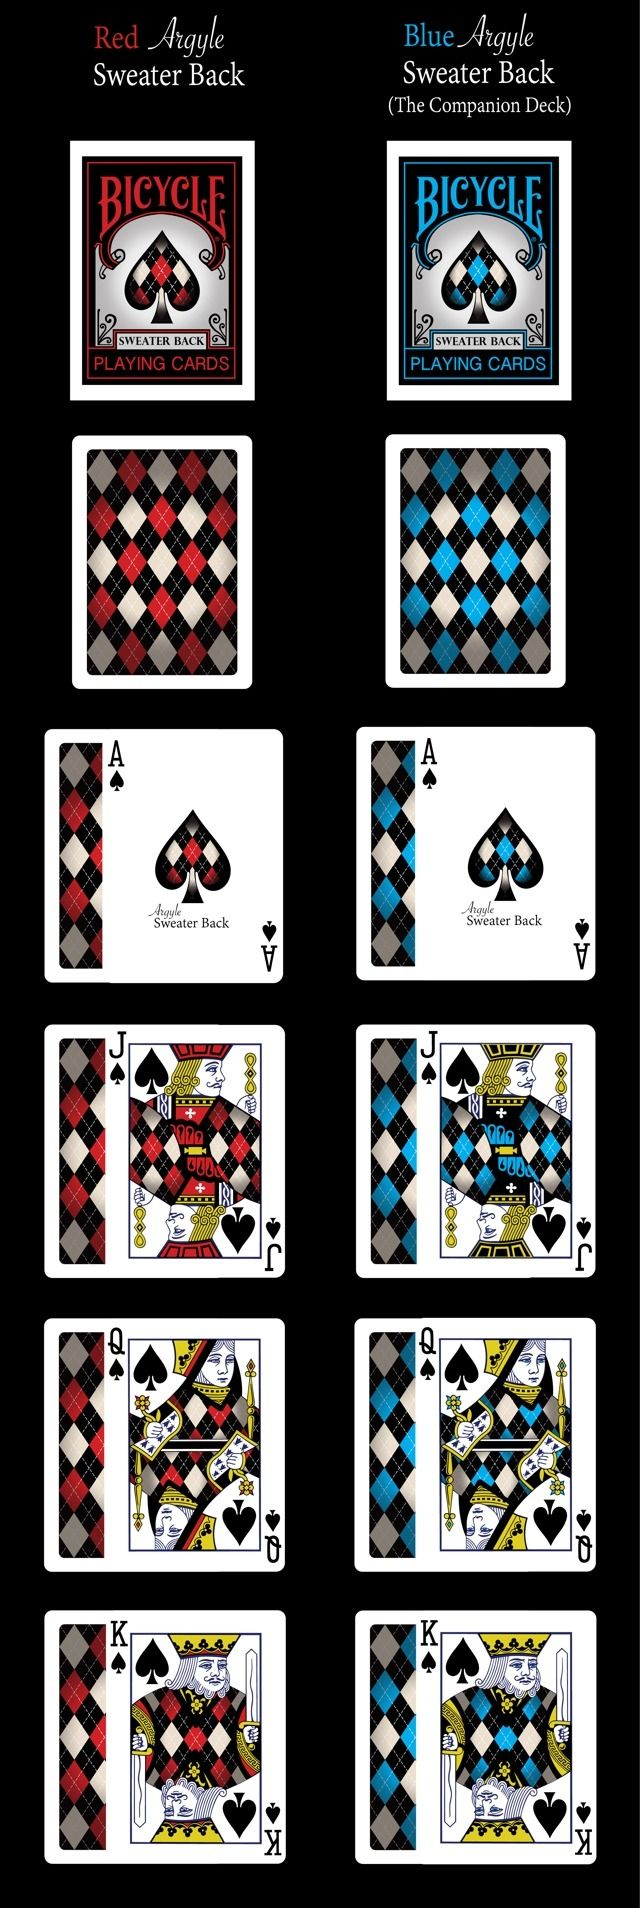 Bicycle® Sweater Back Playing Cards by Eric Twiddy — Kickstarter